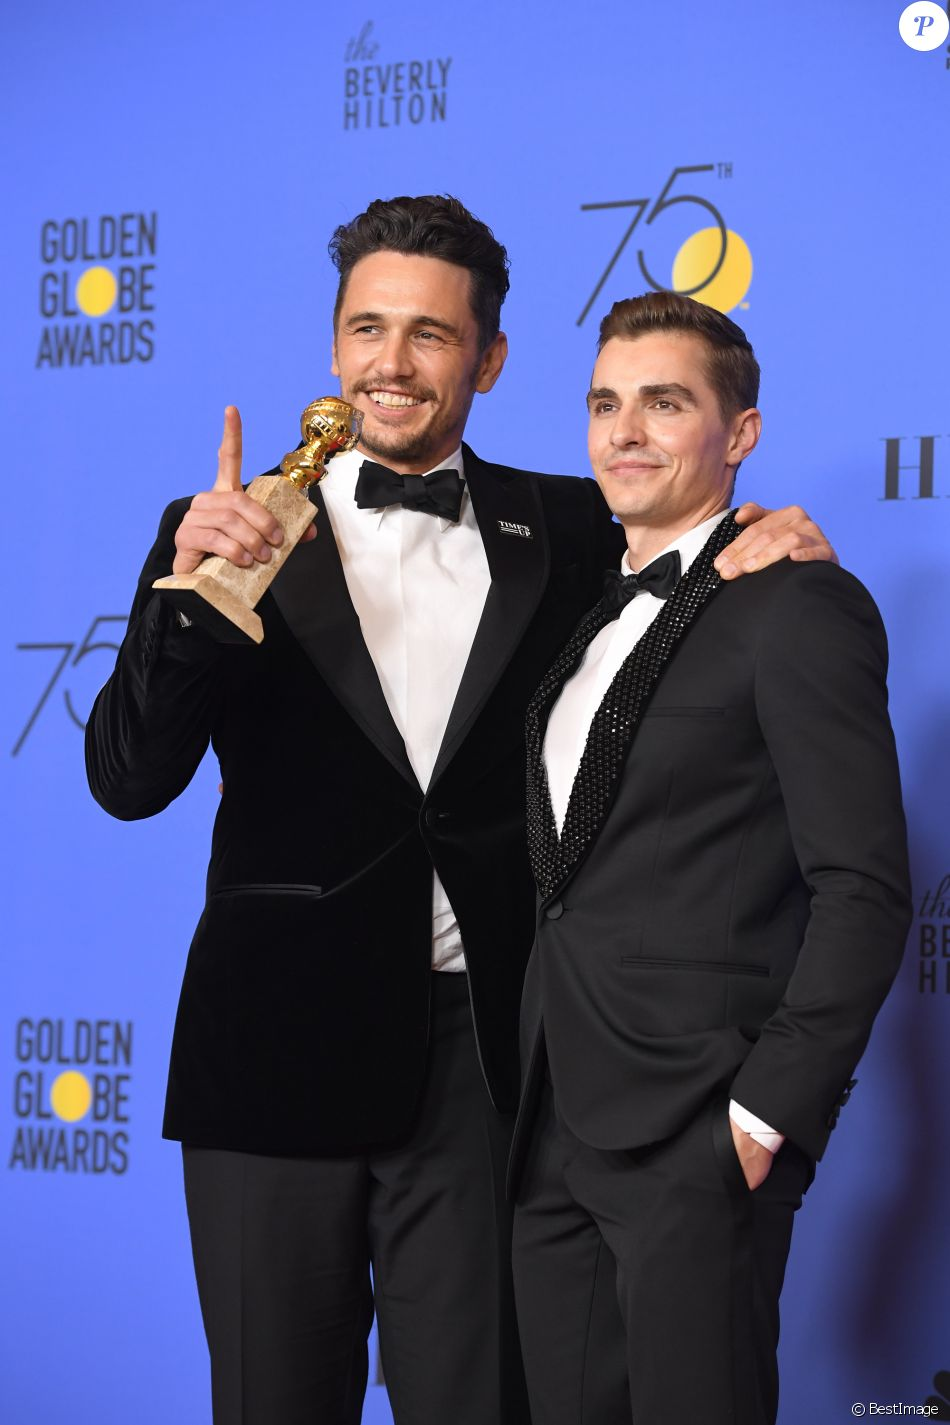 "Dave Franco et son frère James Franco (Golden Globe du meilleur acteur dans un film musical ou une comédie pour ""The Disaster Artist"") - 75e cérémonie annuelle des Golden Globe Awards au Beverly Hilton Hotel à Los Angeles, le 7 janvier 2018. © Chris Delmas/Bestimage"